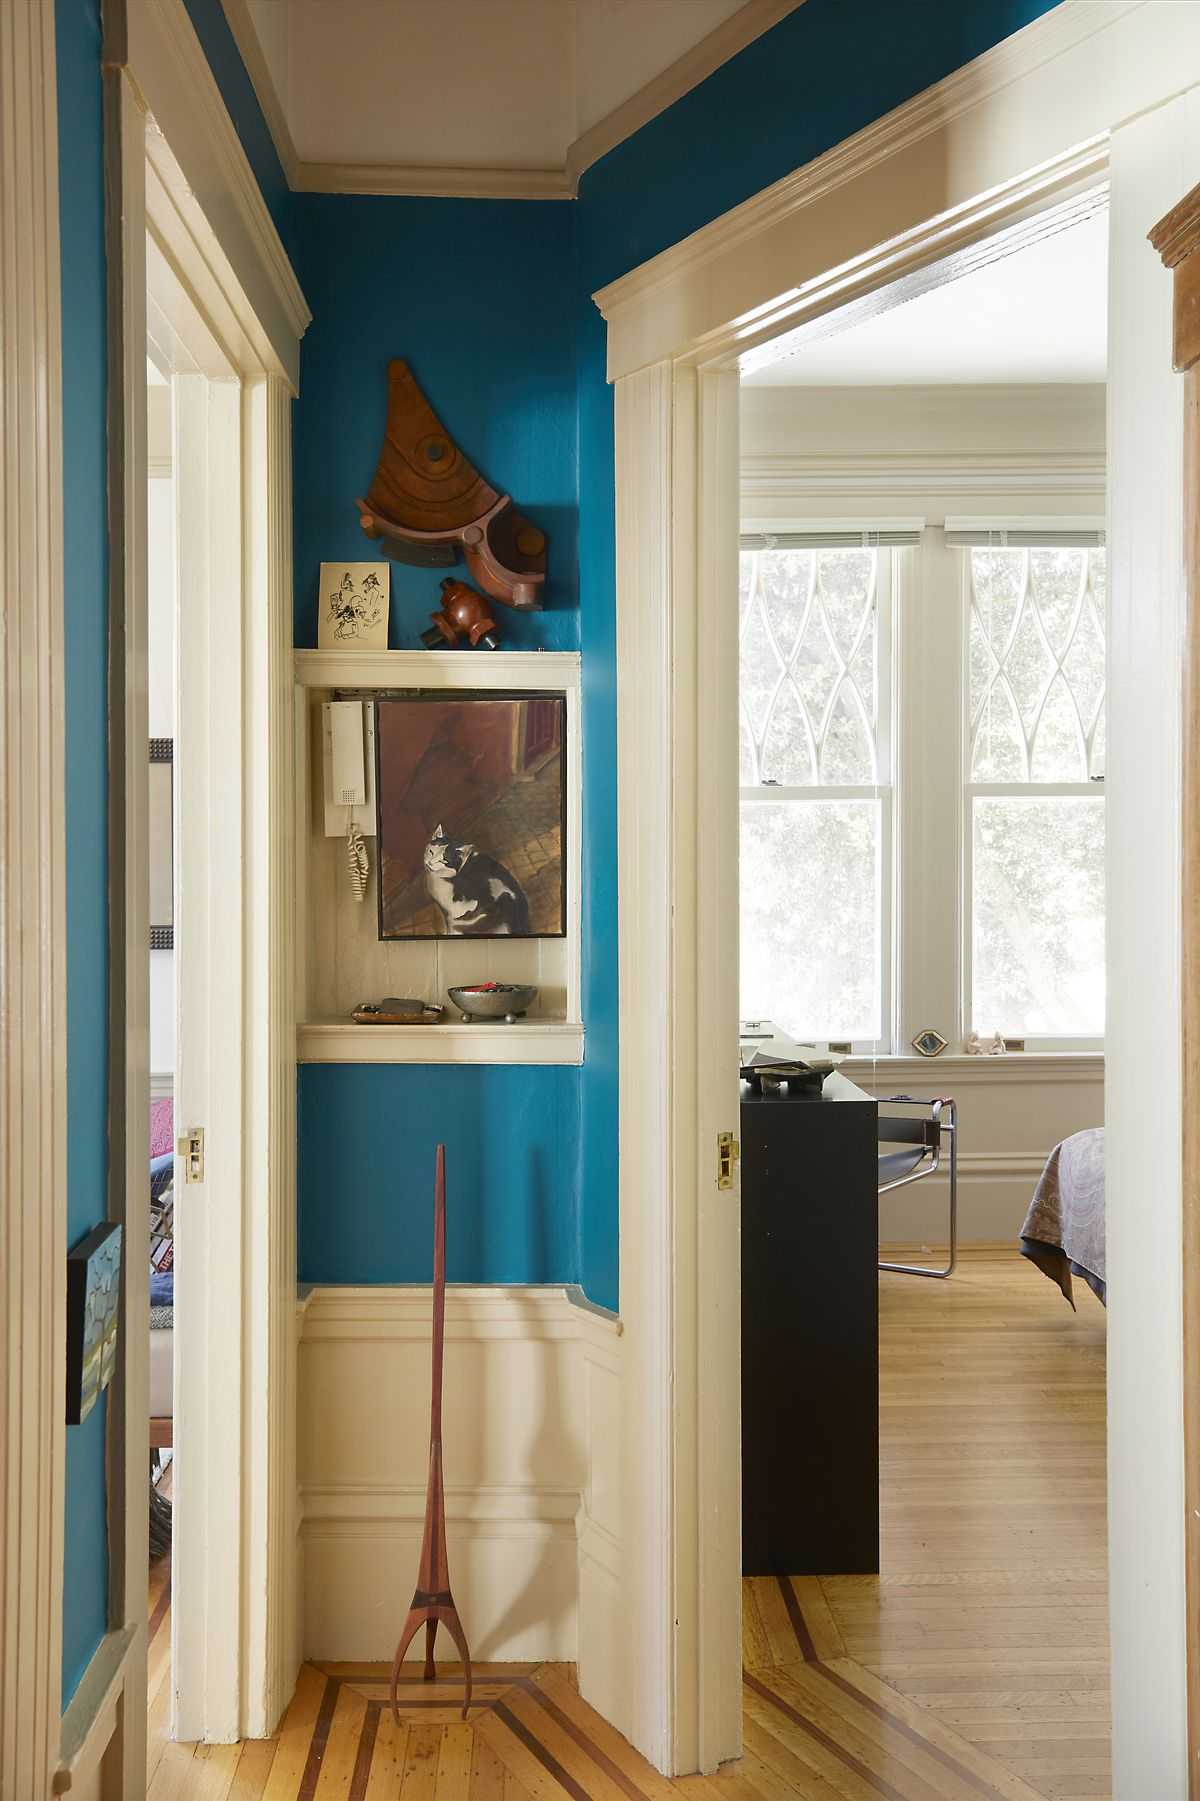 The corner of a hallway. The wall is painted blue. The moldings are white. There are multiple works of art hanging on the wall. The doorway looks into a bedroom. The floor is hardwood.